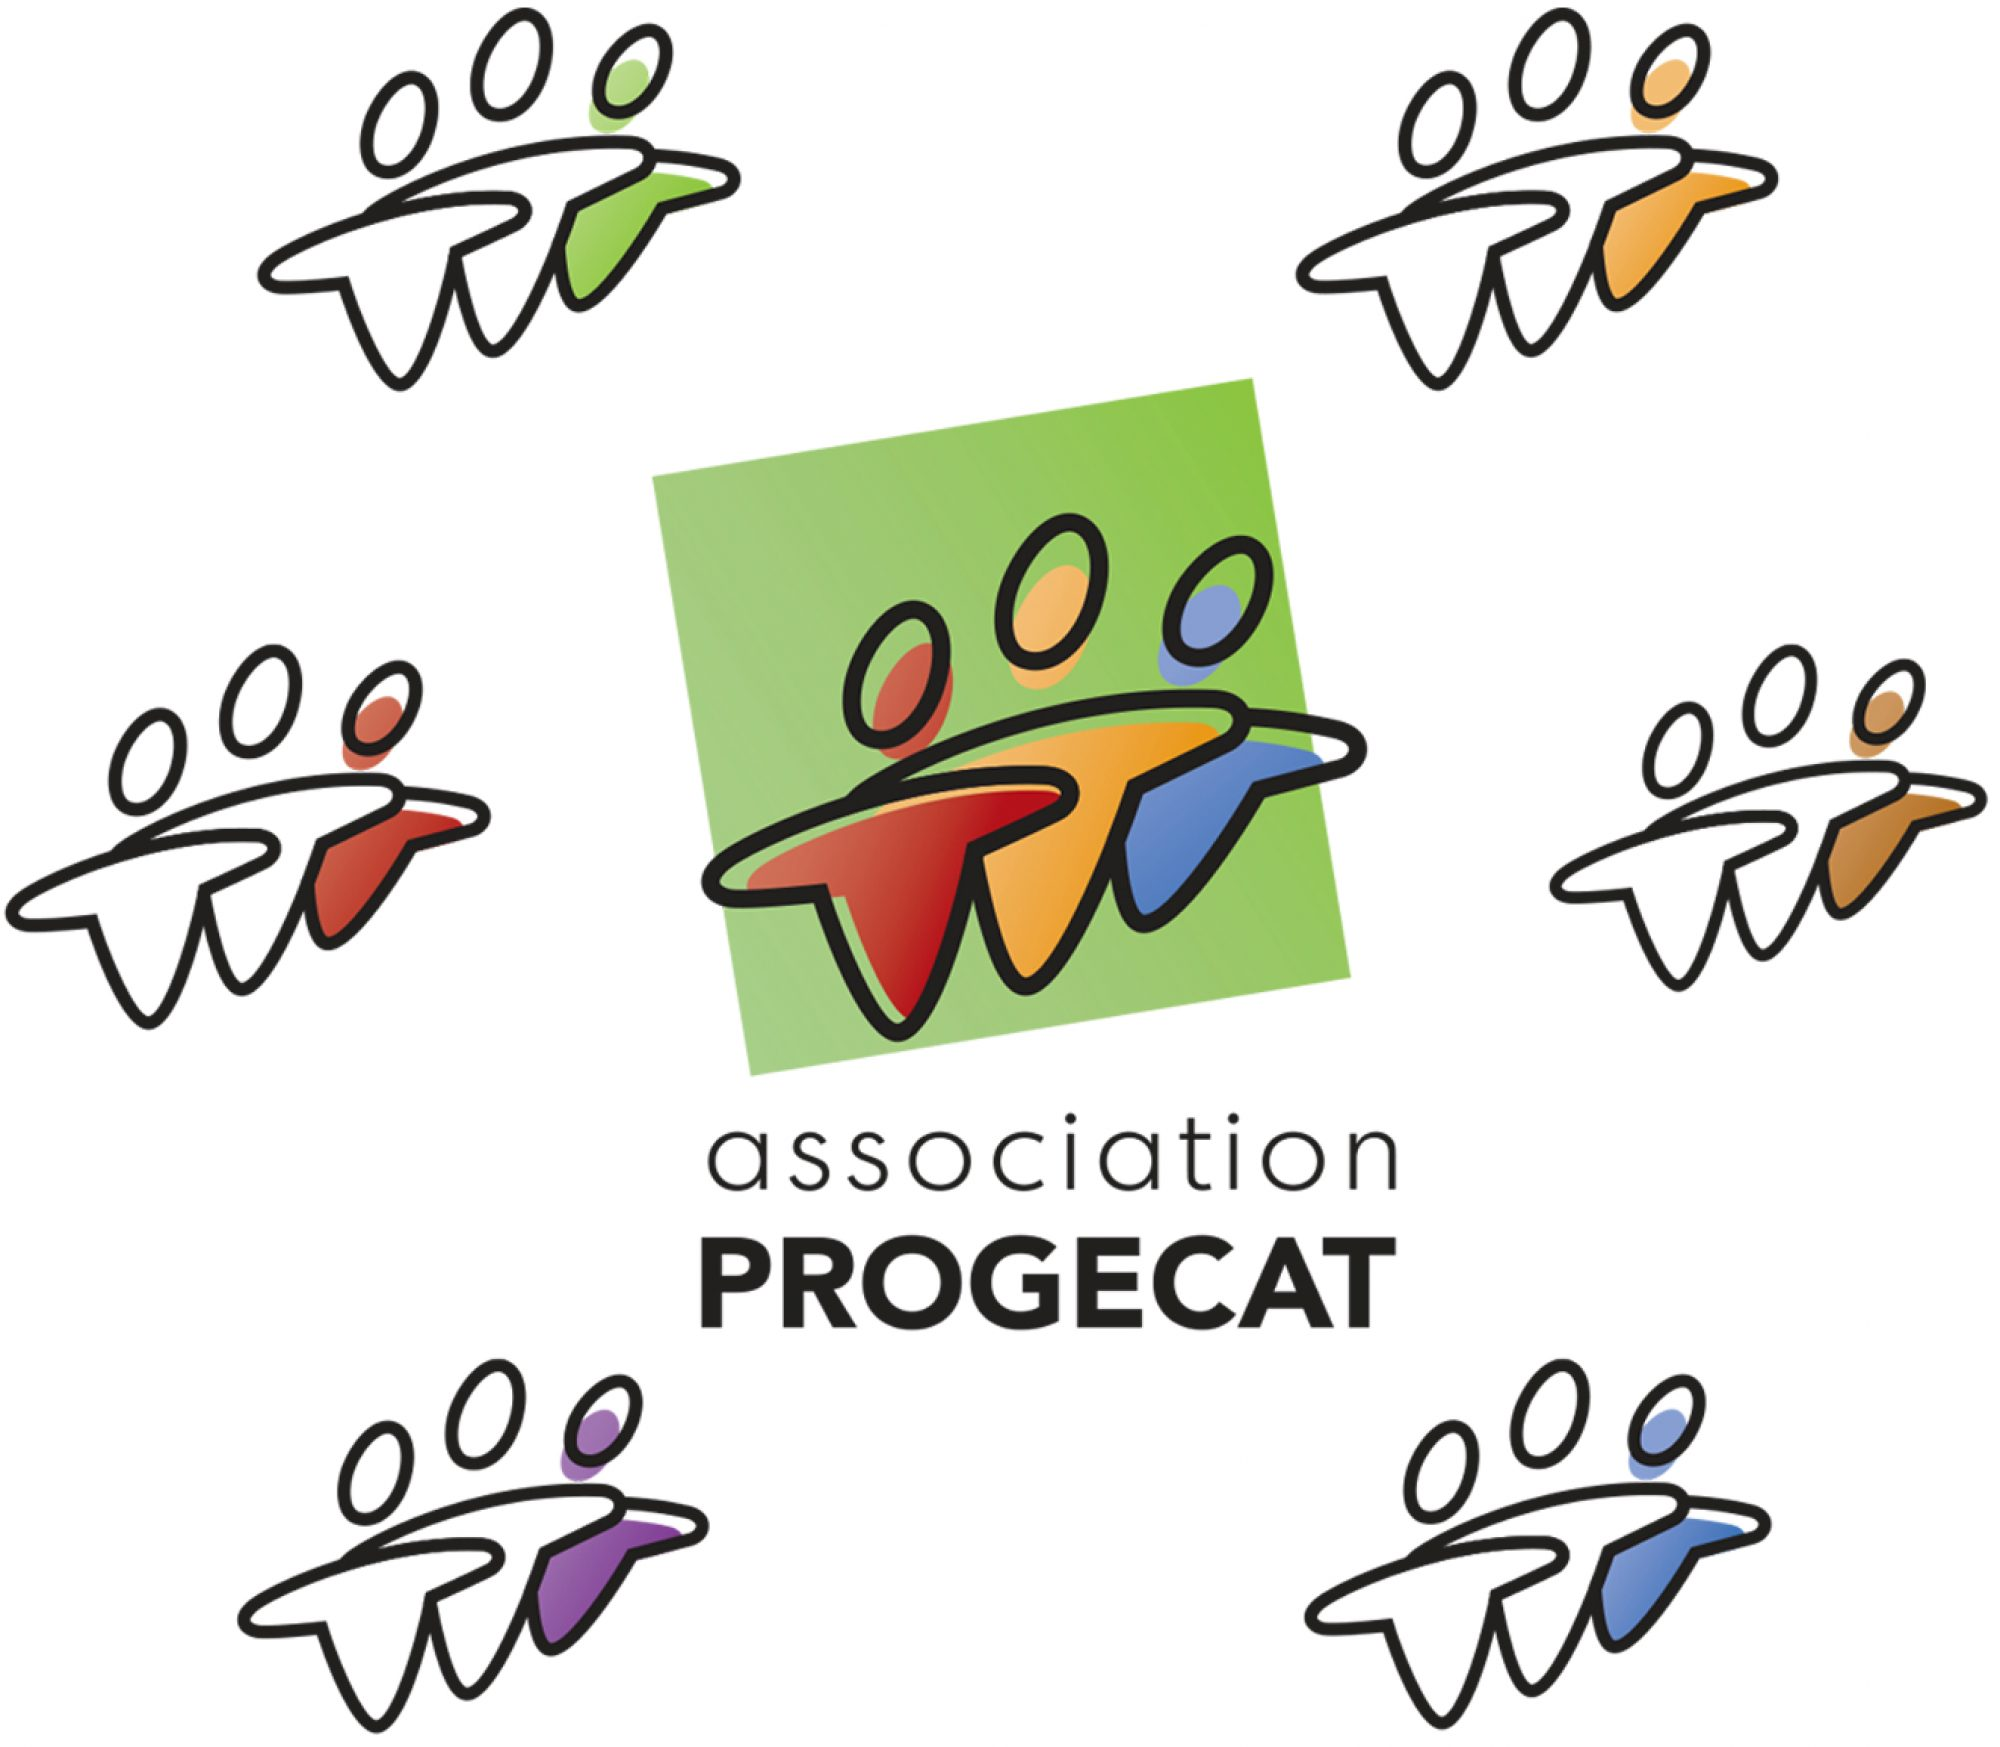 Association PROGECAT